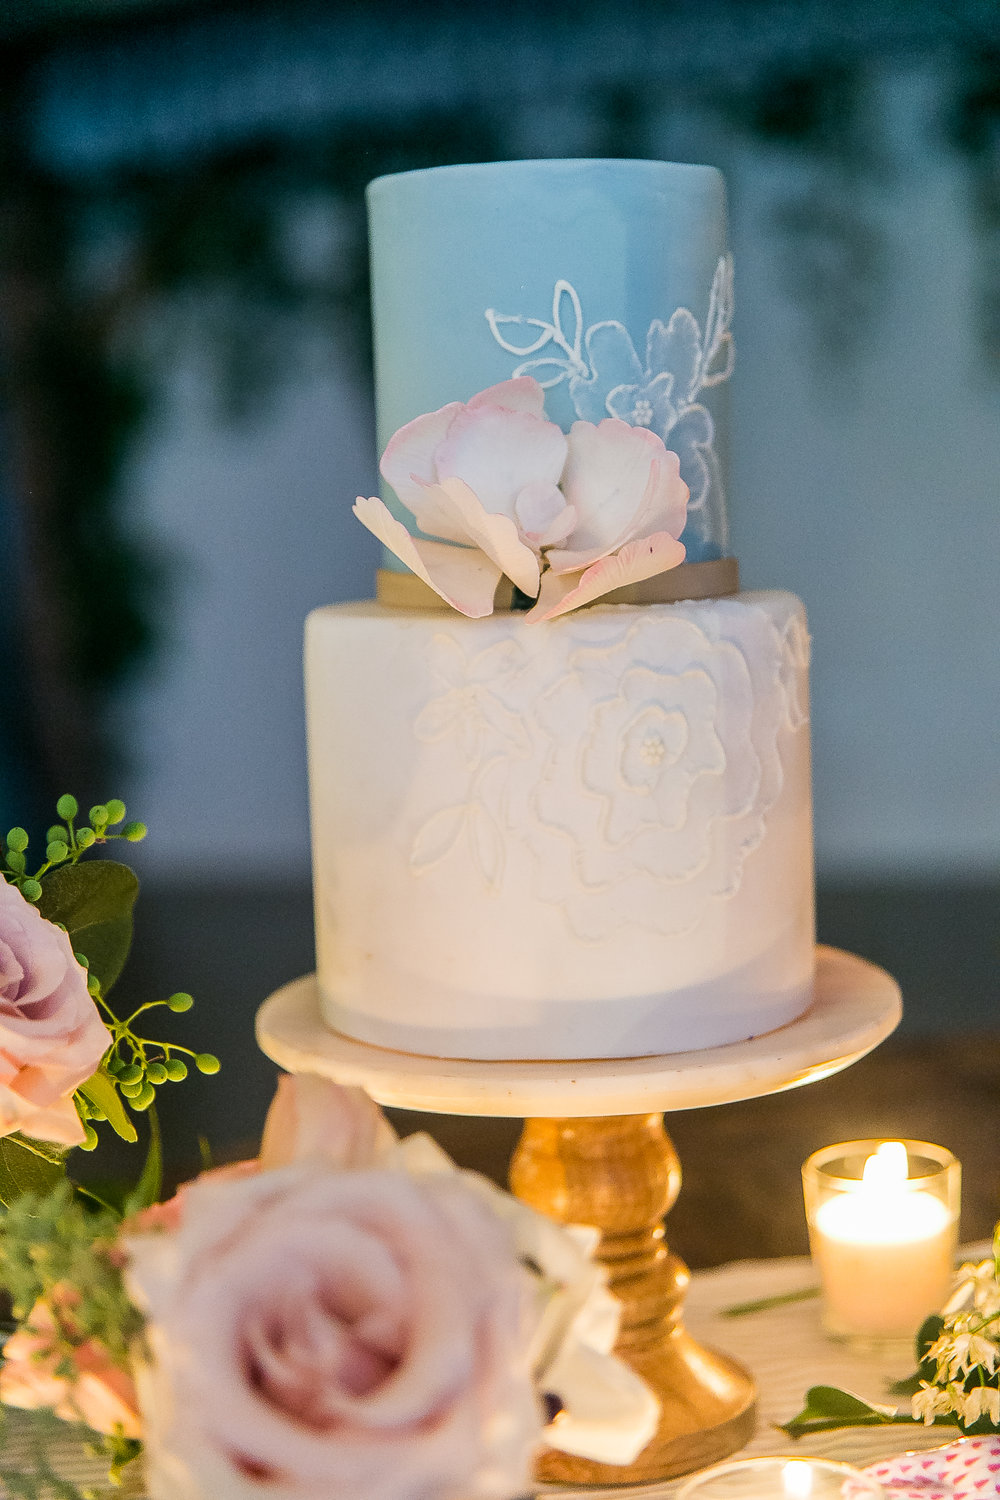 Southern Summer at Home Wedding Barn Chapel Hill NC cake